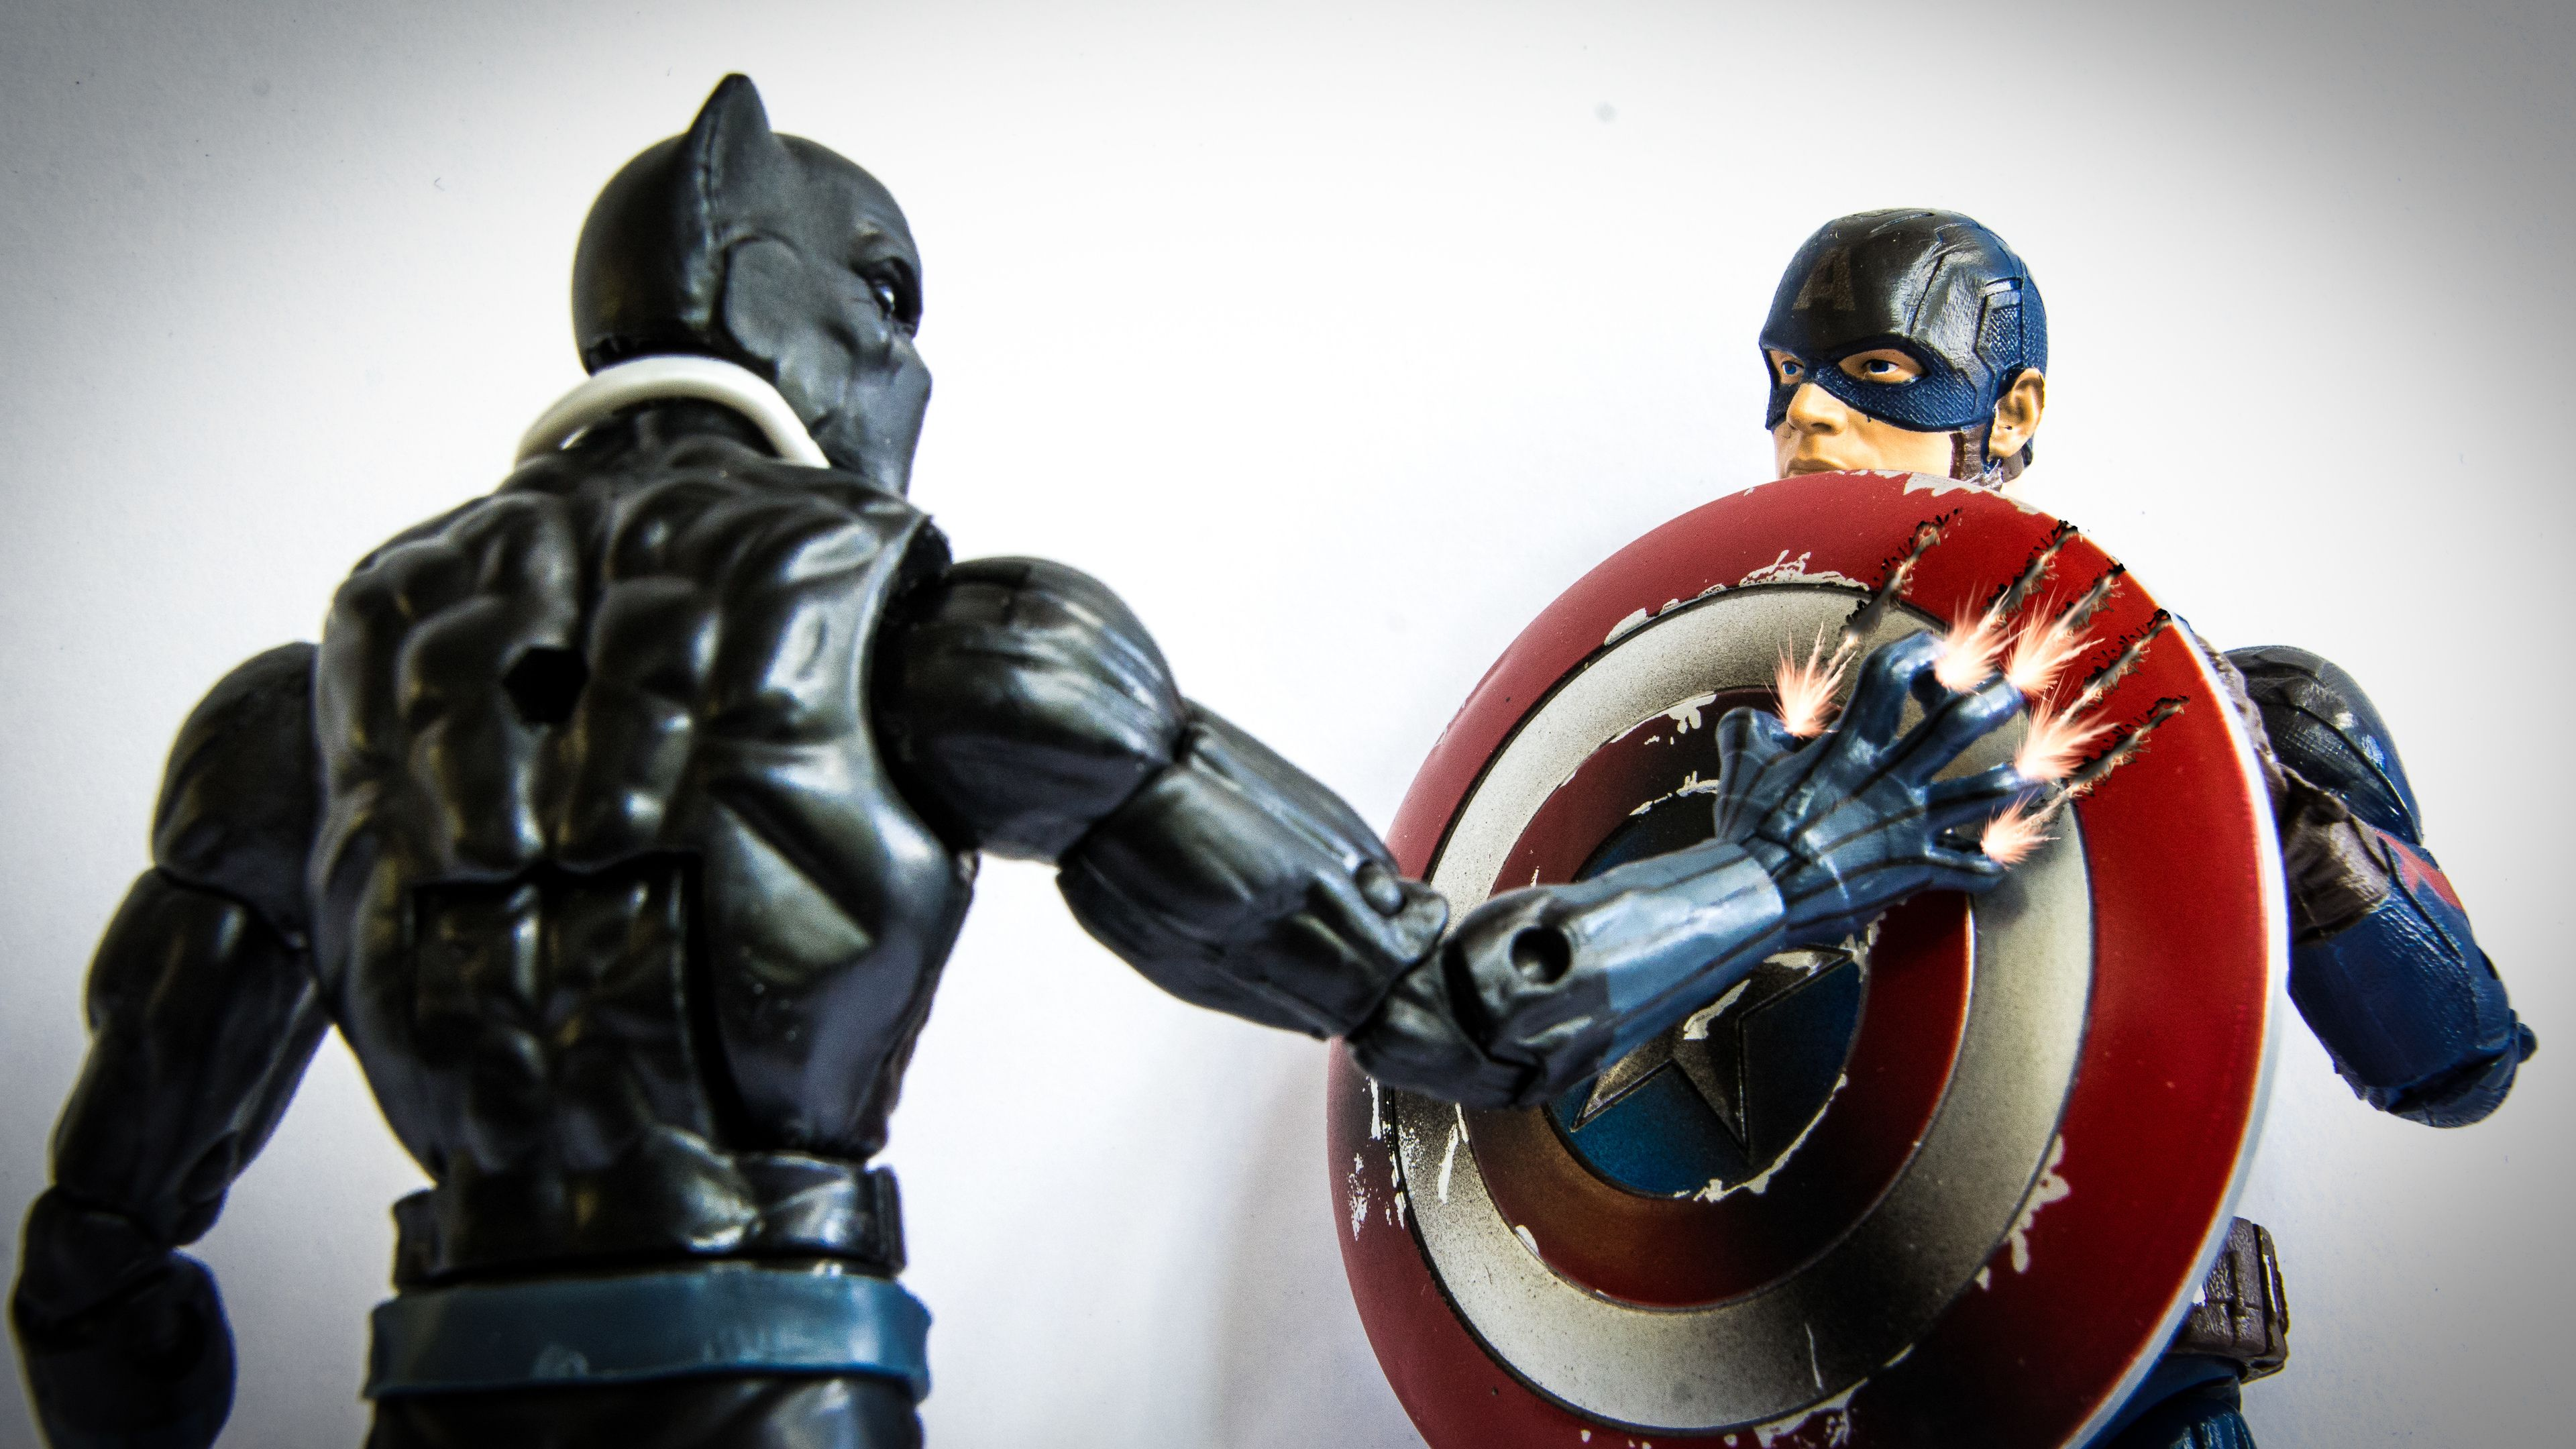 Black Panther And Captain America Shield Shield Wallpapers Hd Wallpapers Captain America Wallp Captain America Wallpaper Captain America Shield Black Panther